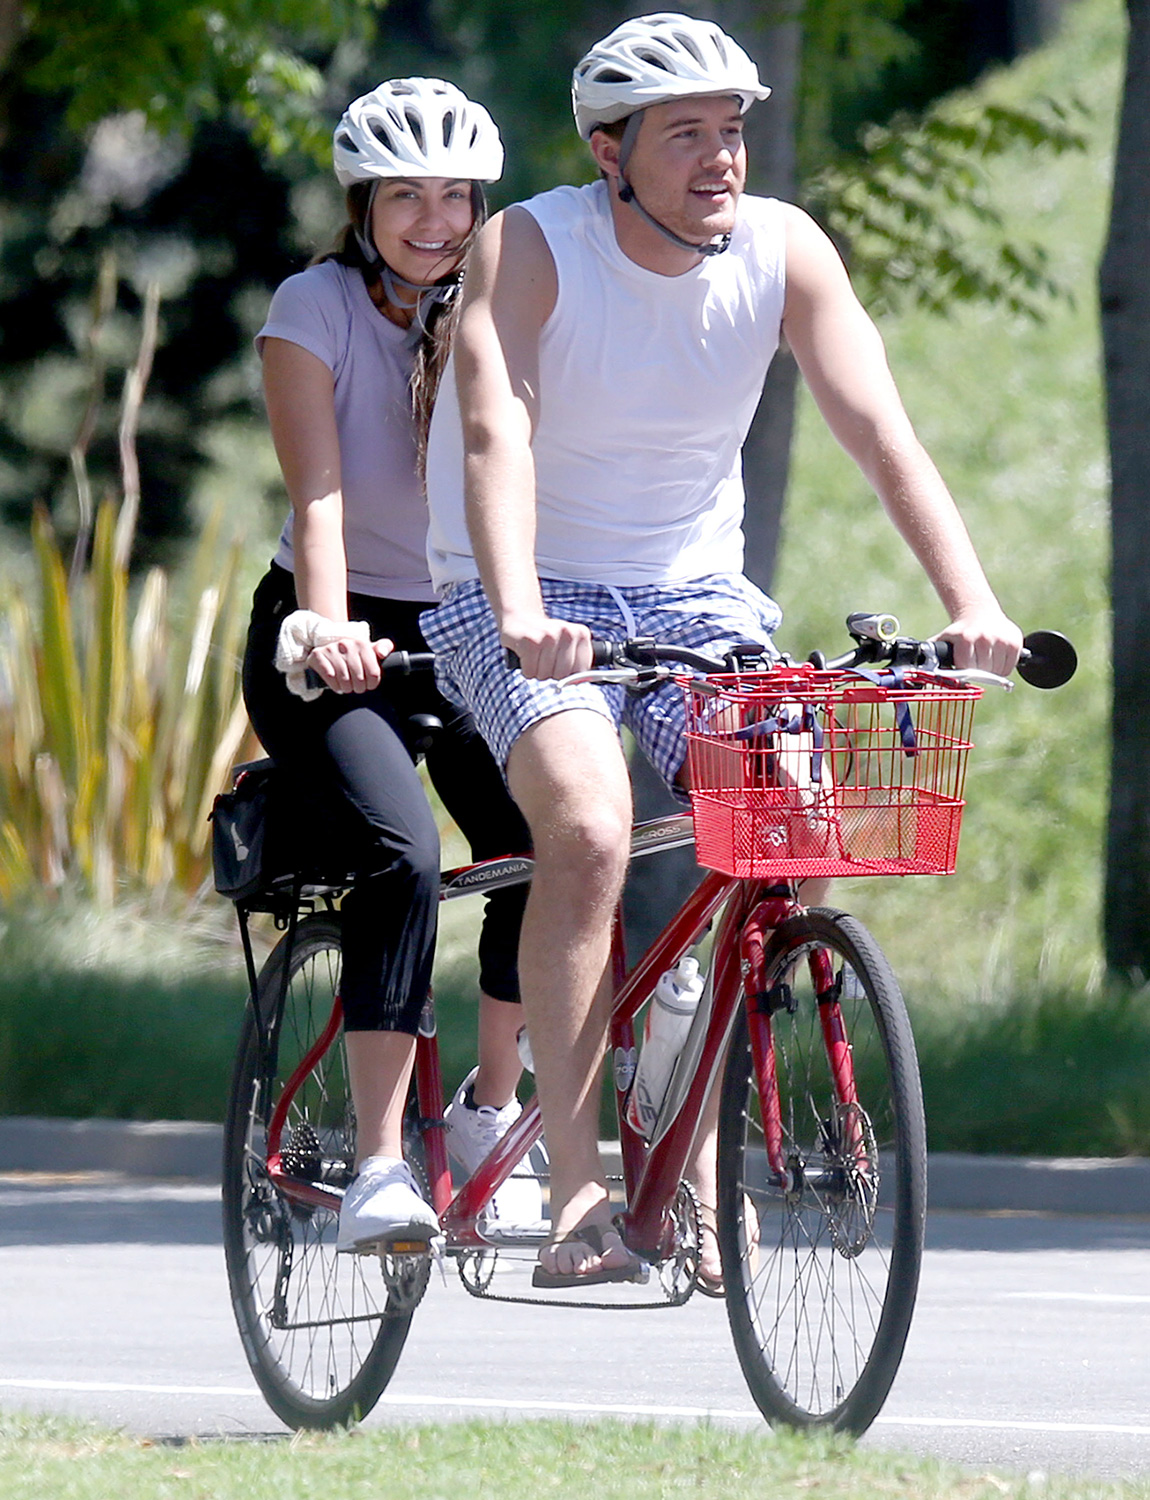 Bachelor Peter Weber Rides A Tandem Bike With His Co-pilot Kelley Flanagan In Los Angeles, California